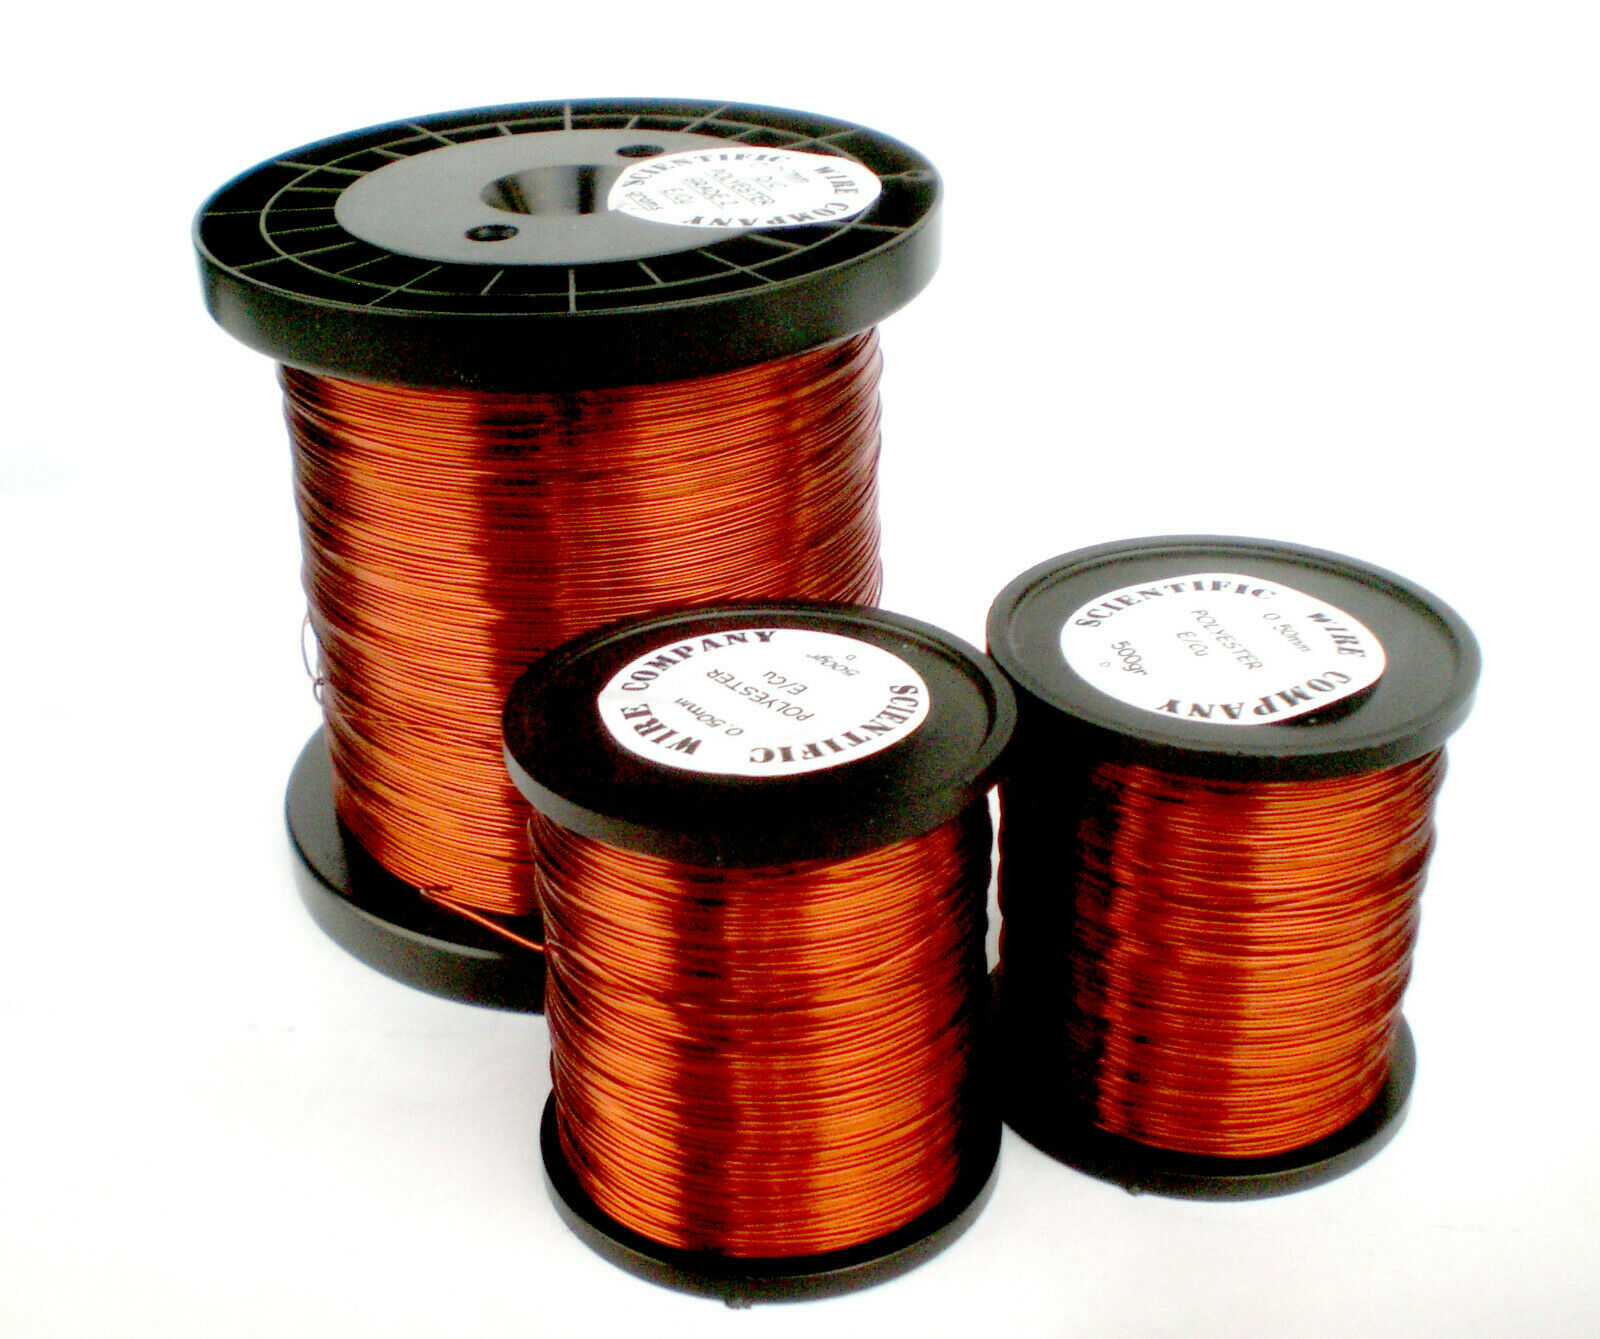 44 GAUGE ENAMELLED COPPER GUITAR PICKUP COIL WIRE, MAGNET WIRE 500g ...